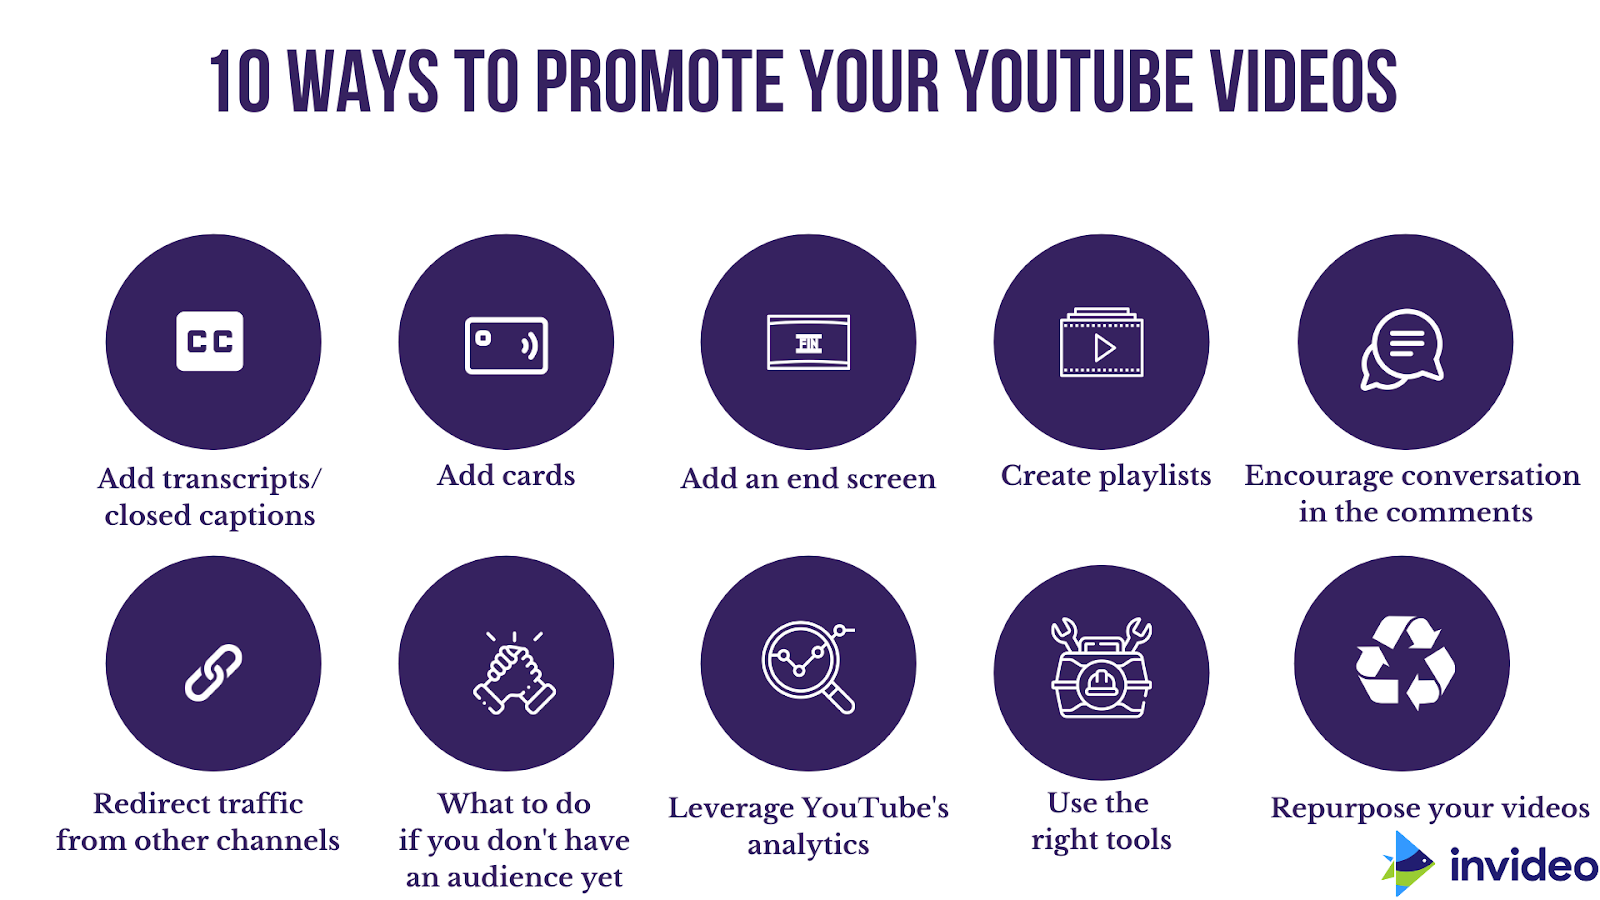 10 ways to promote your youtube videos